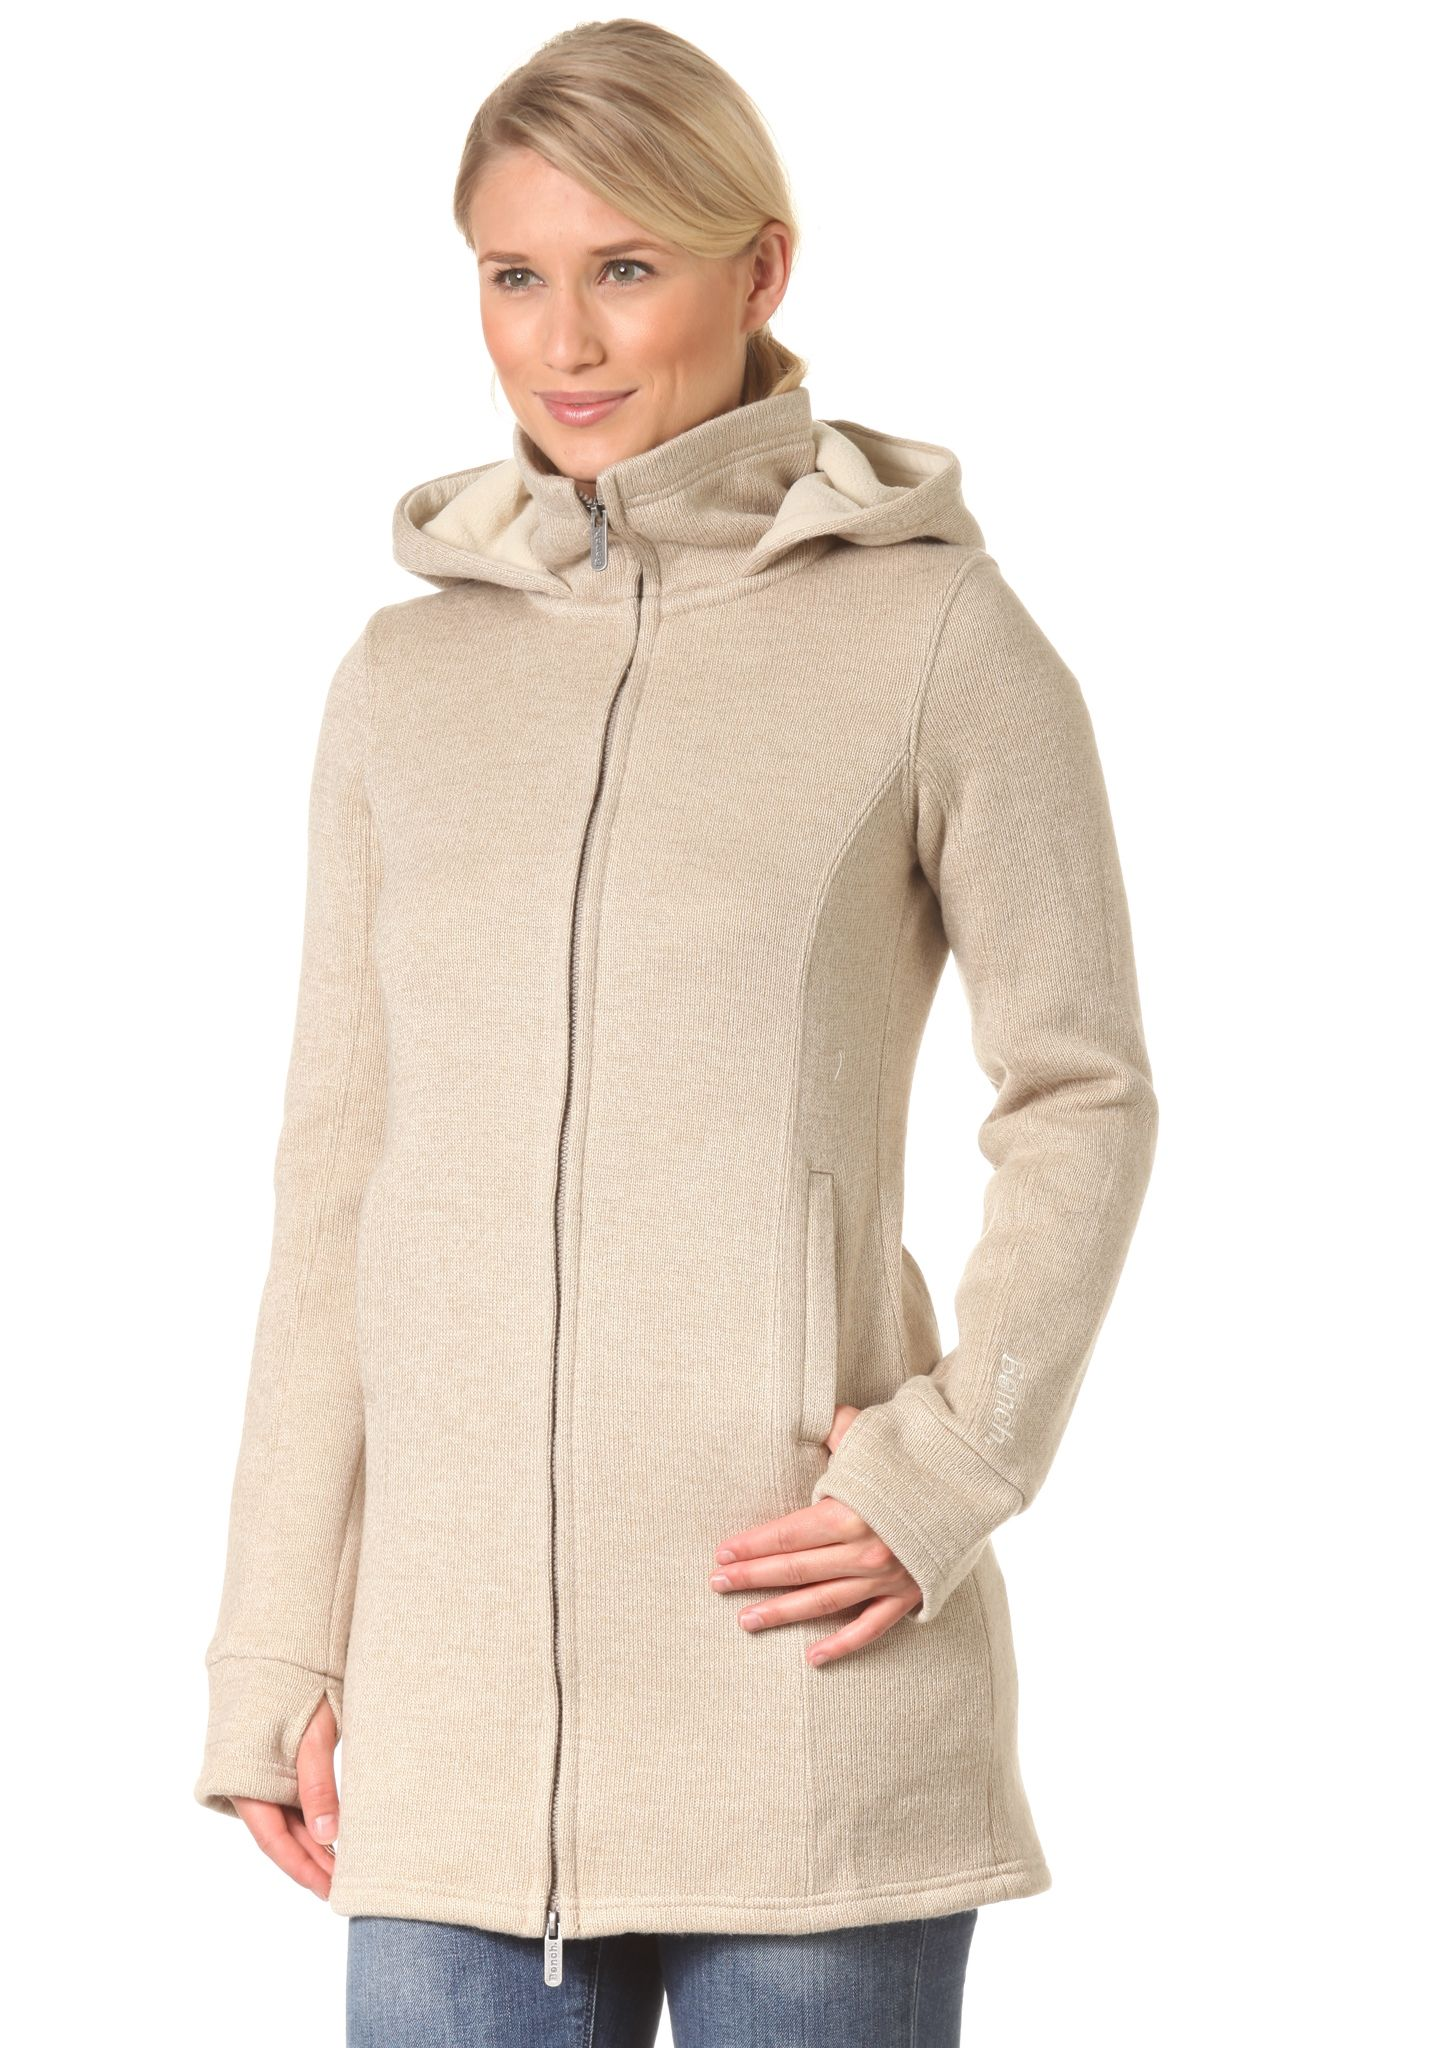 Knit Für Bench Jacket Damen Planet Beige Strickjacke Bradie